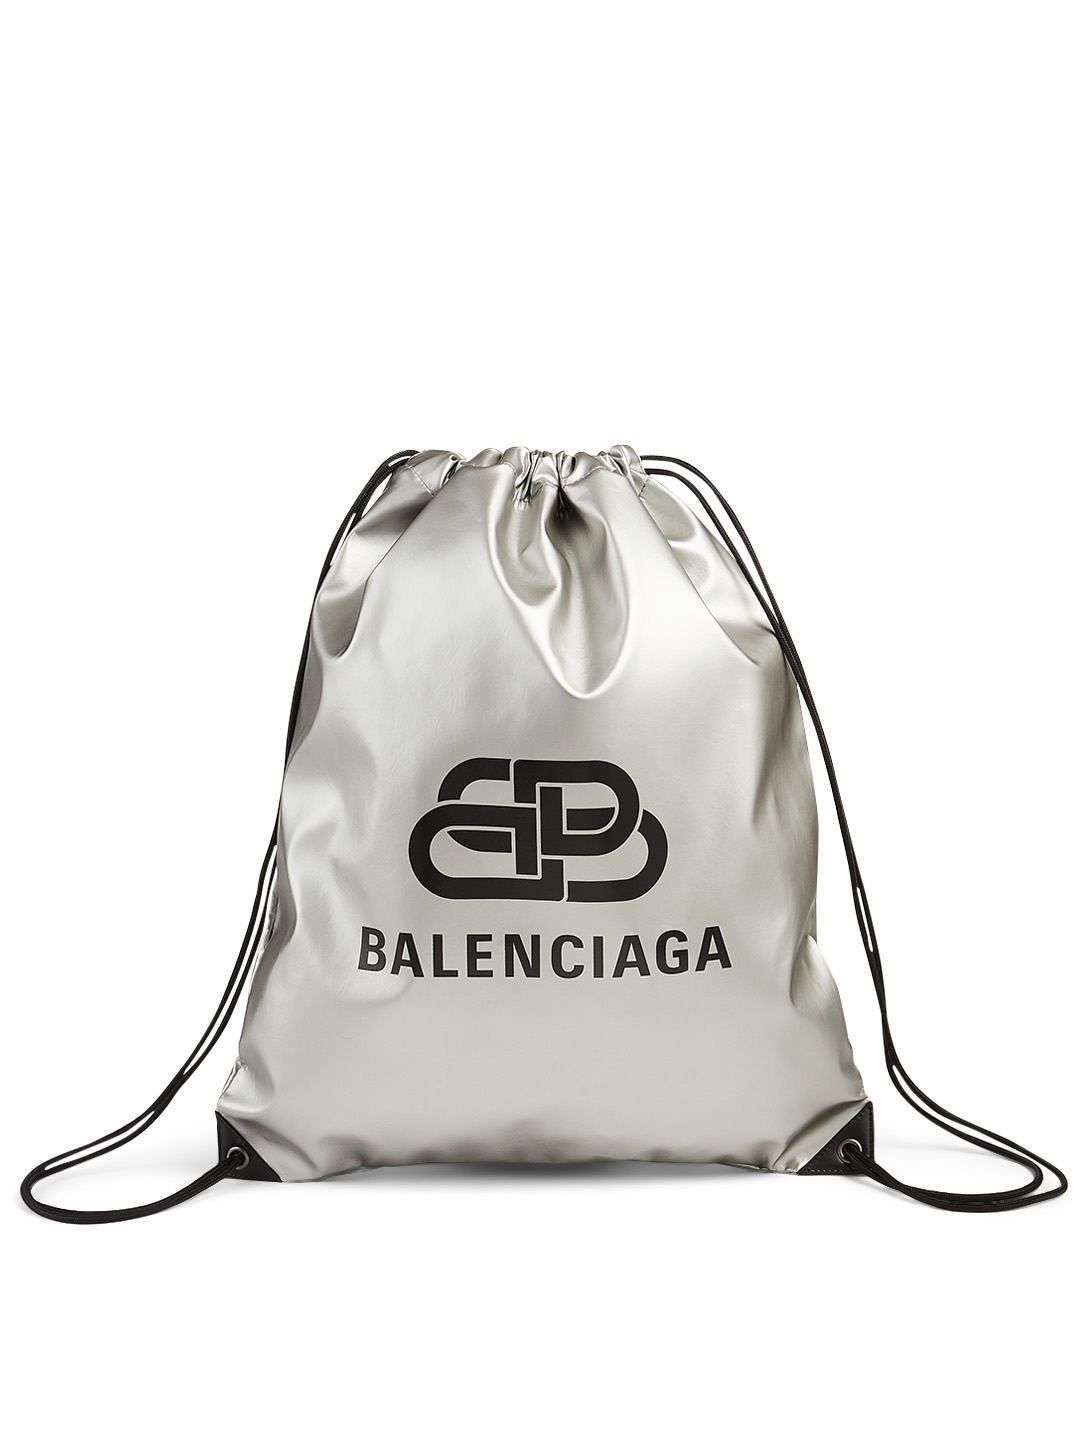 BALENCIAGA Metallic Nylon Drawstring Backpack With Logo Men's Metallic